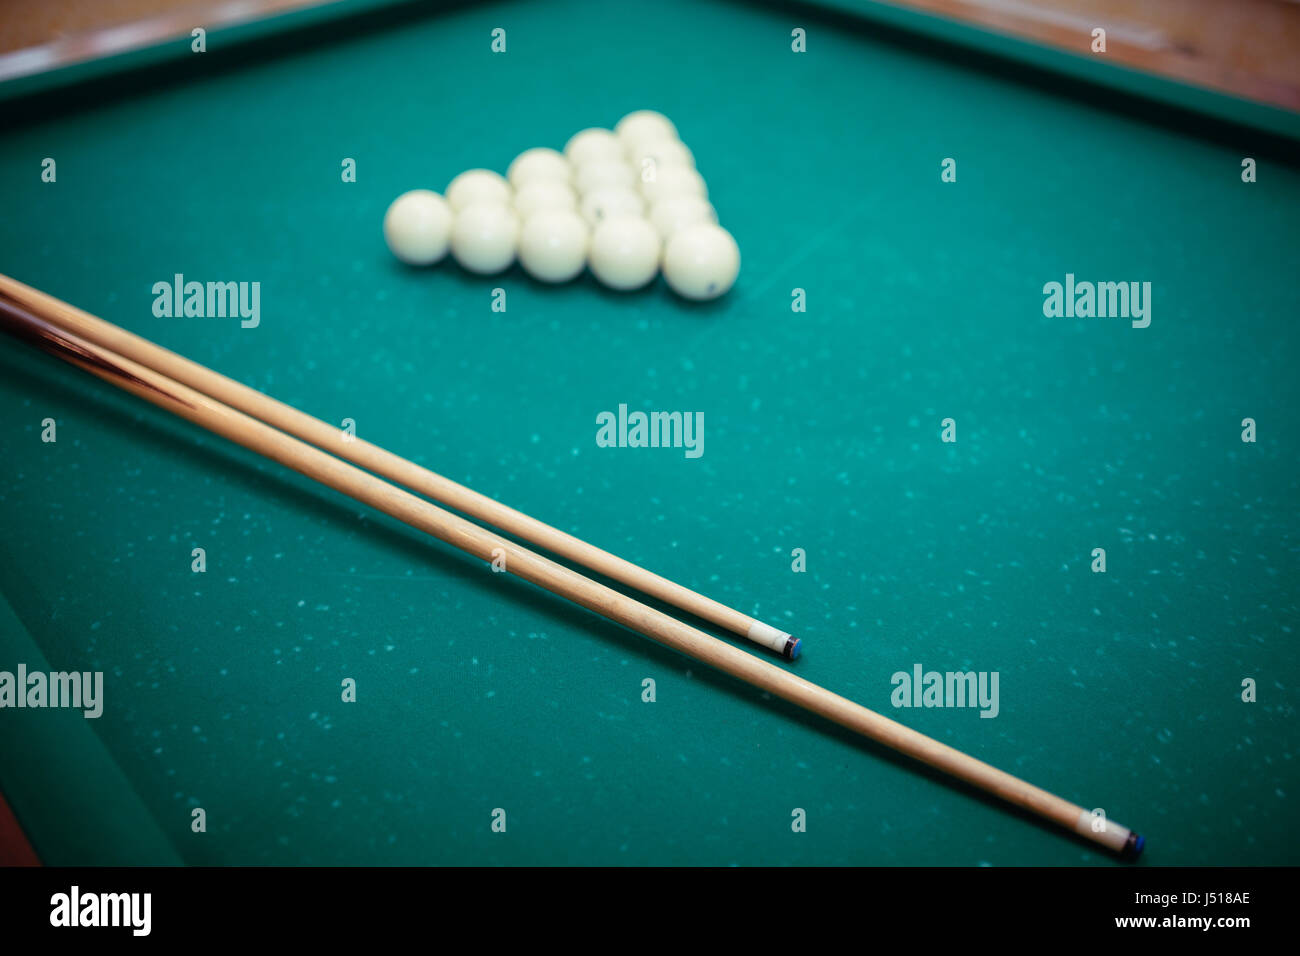 Billiard balls and two Cues in the form of a triangle on the billiard table are ready for the game. - Stock Image